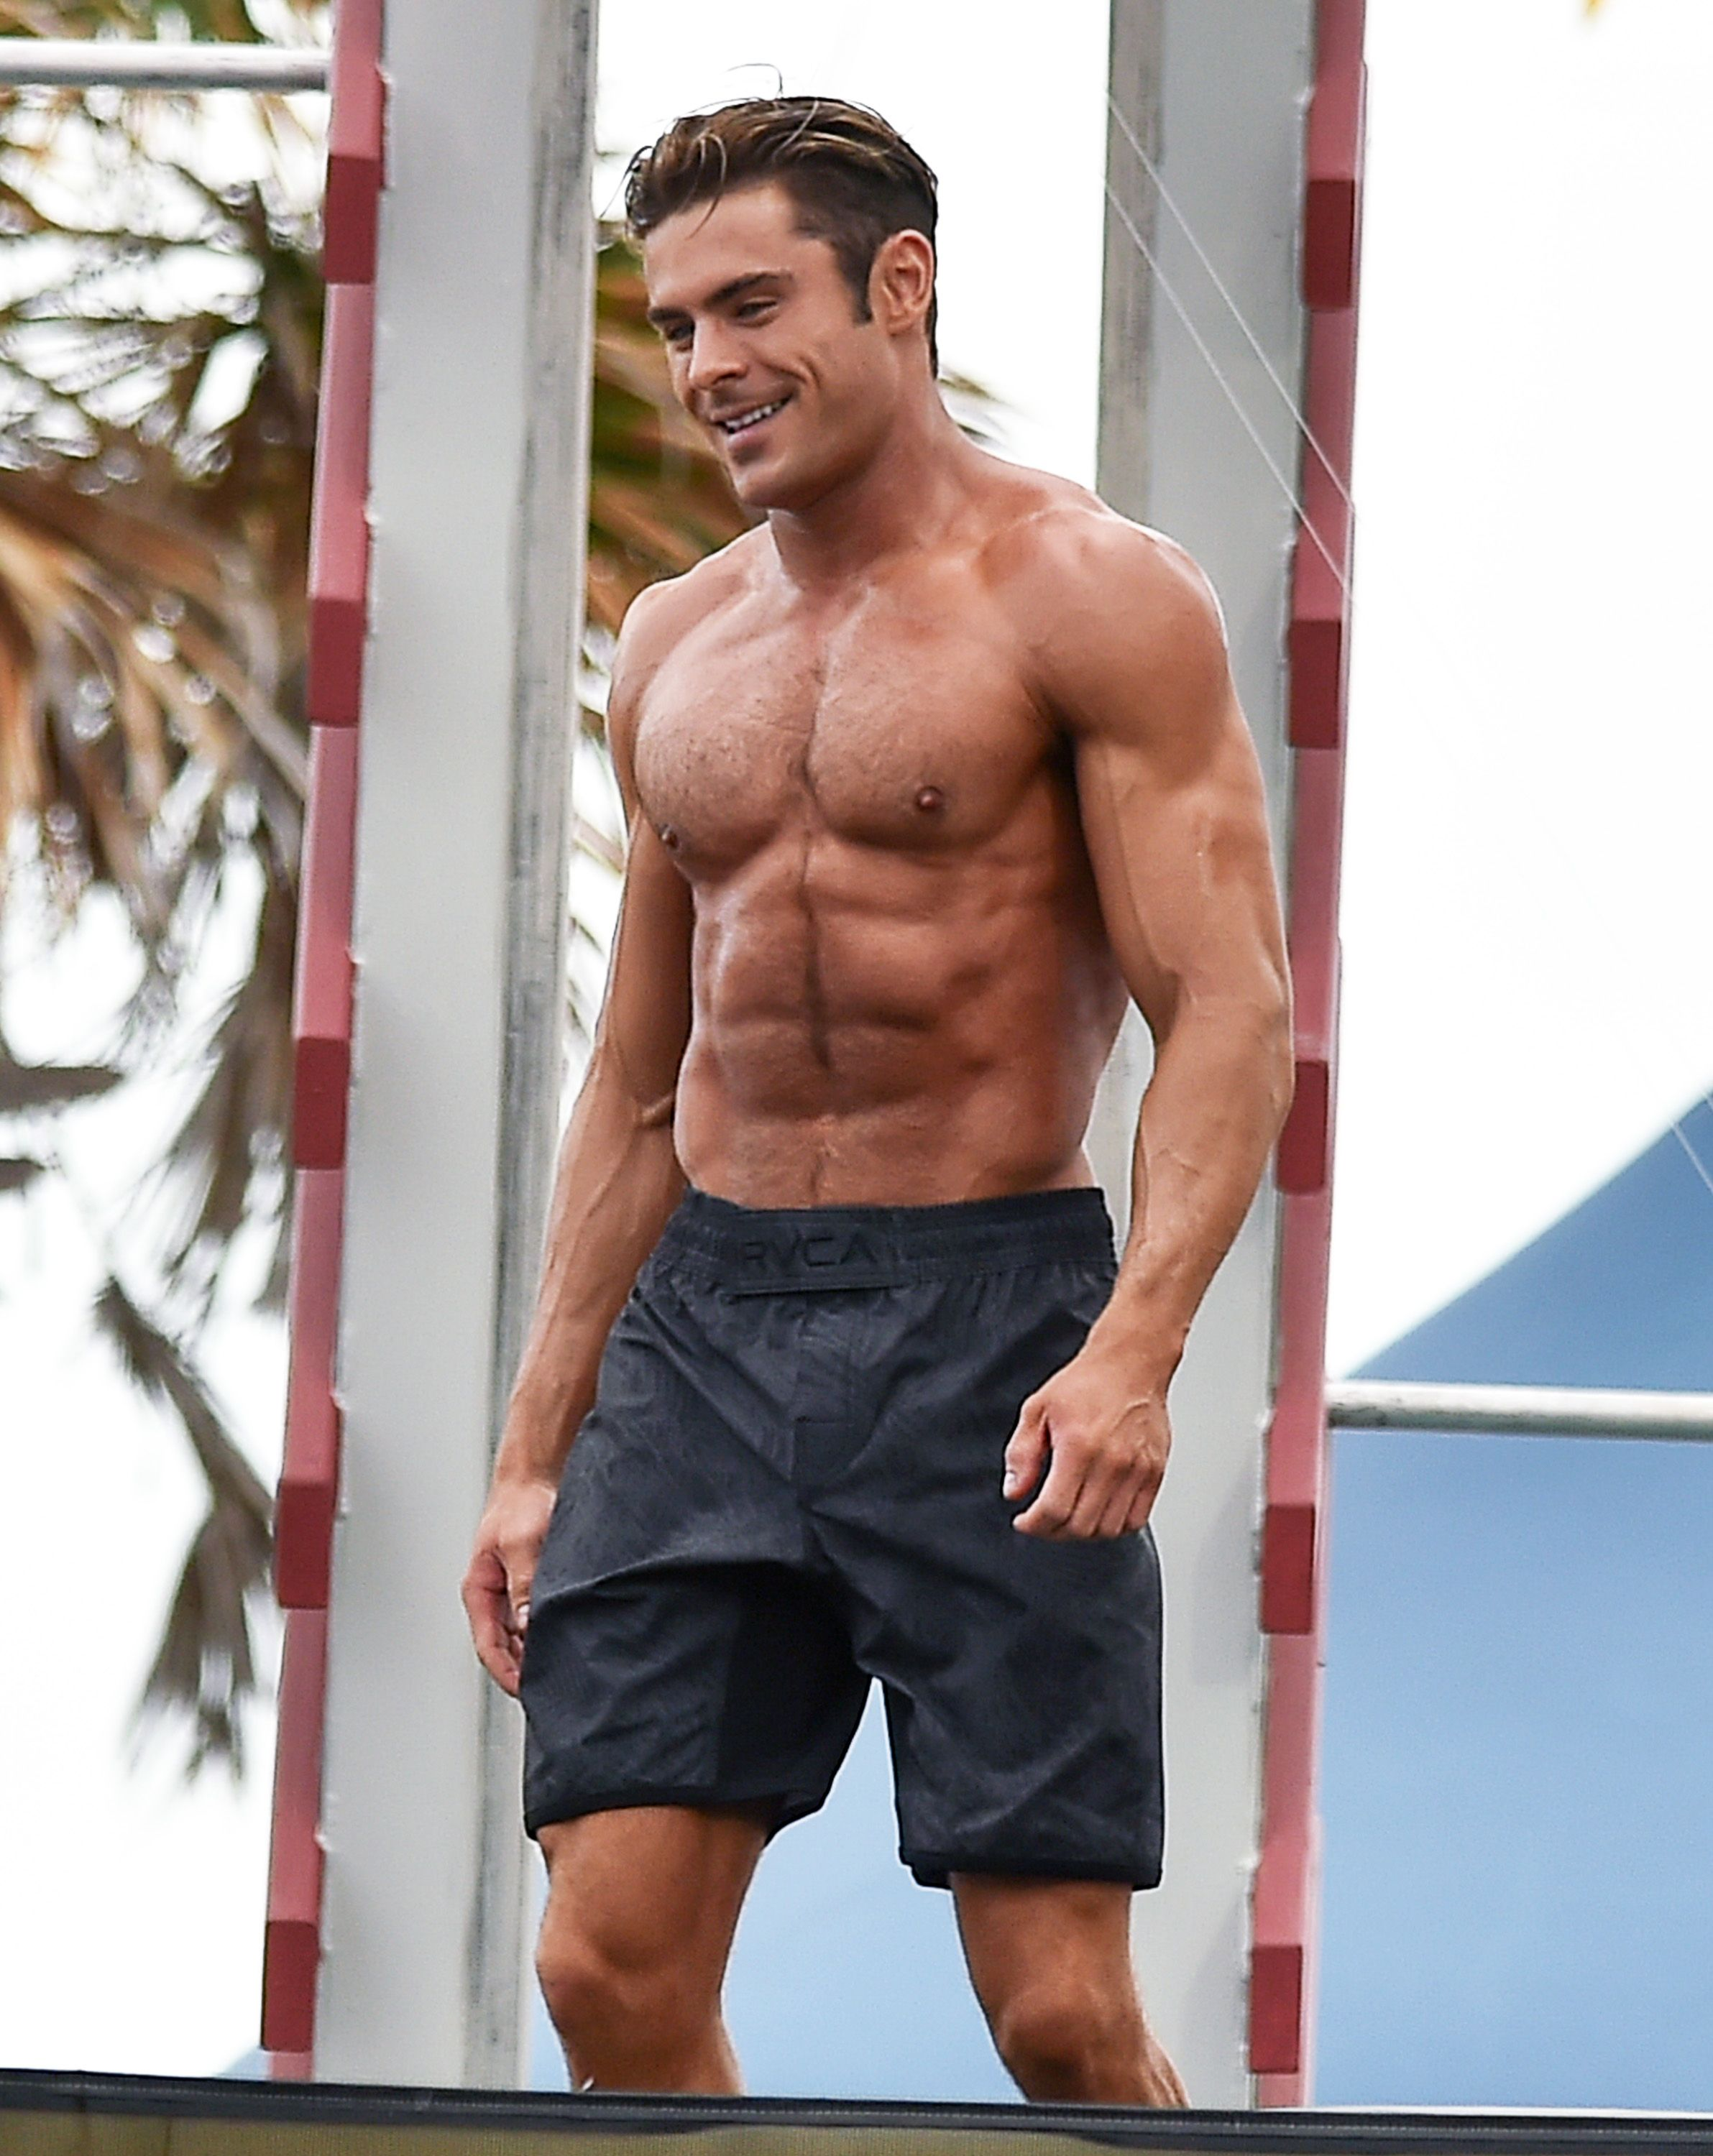 zac efron workoutzac efron films, zac efron instagram, zac efron movies, zac efron height, zac efron vk, zac efron meme, zac efron filmi, zac efron рост, zac efron wiki, zac efron stang life, zac efron wikipedia, zac efron workout, zac efron bet on it, zac efron filme, zac efron 17 again, zac efron young, zac efron malibu, zac efron and sami miro, zac efron age, zac efron tattoo